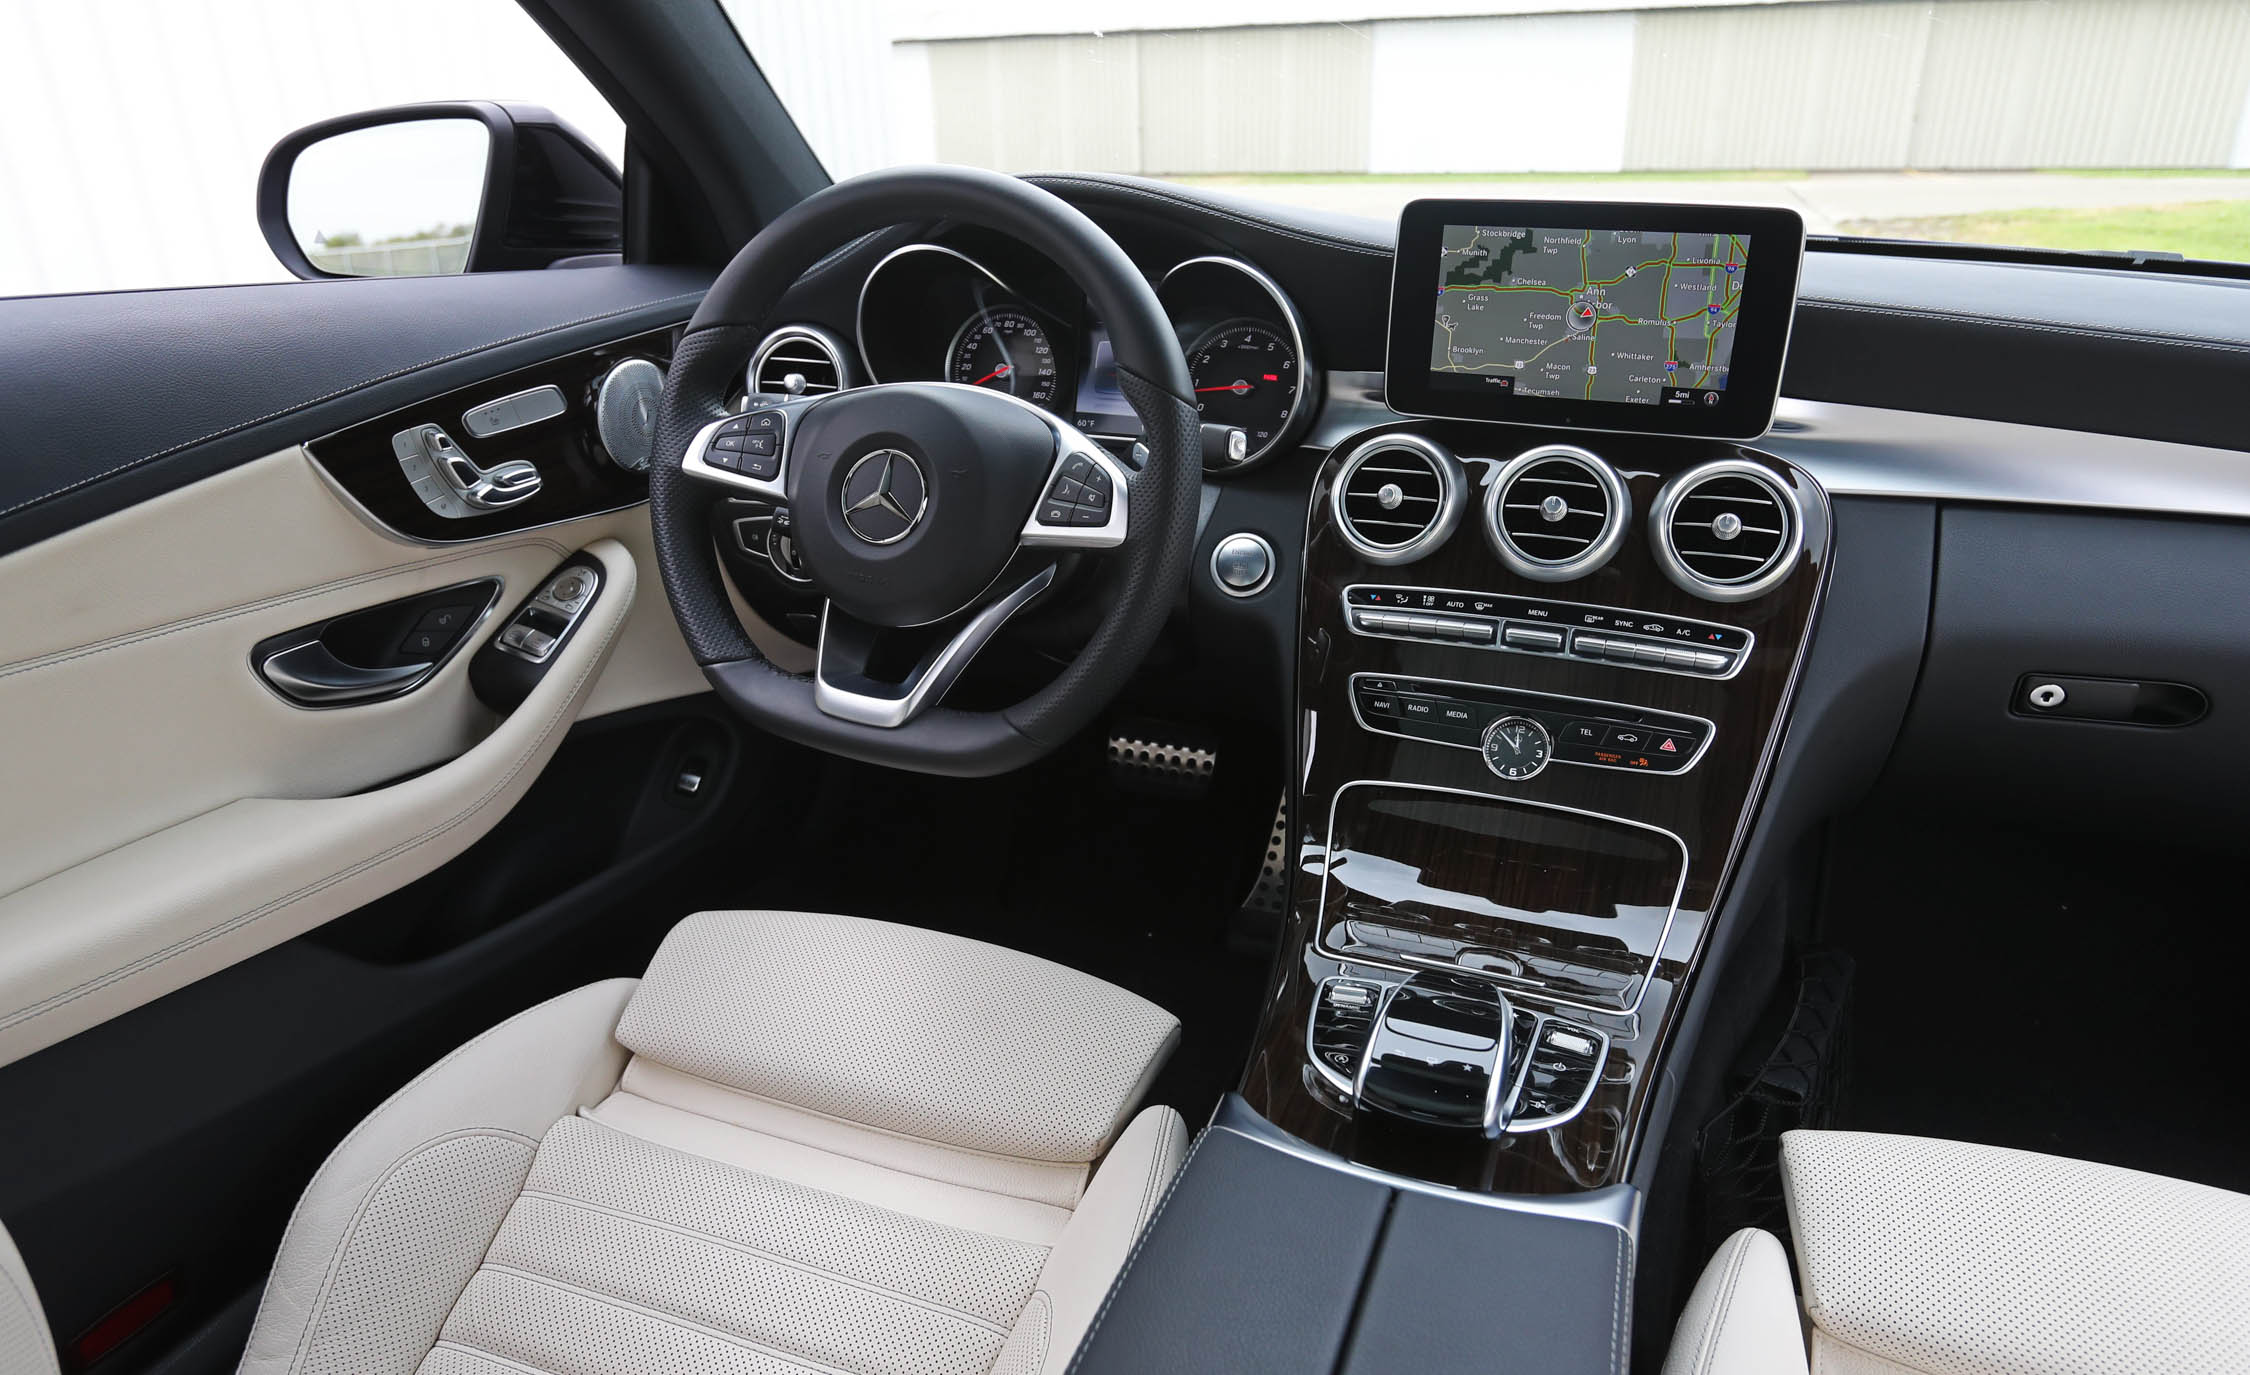 2017 Mercedes Benz C300 4MATIC Coupe Interior Dashboard (Photo 25 of 44)